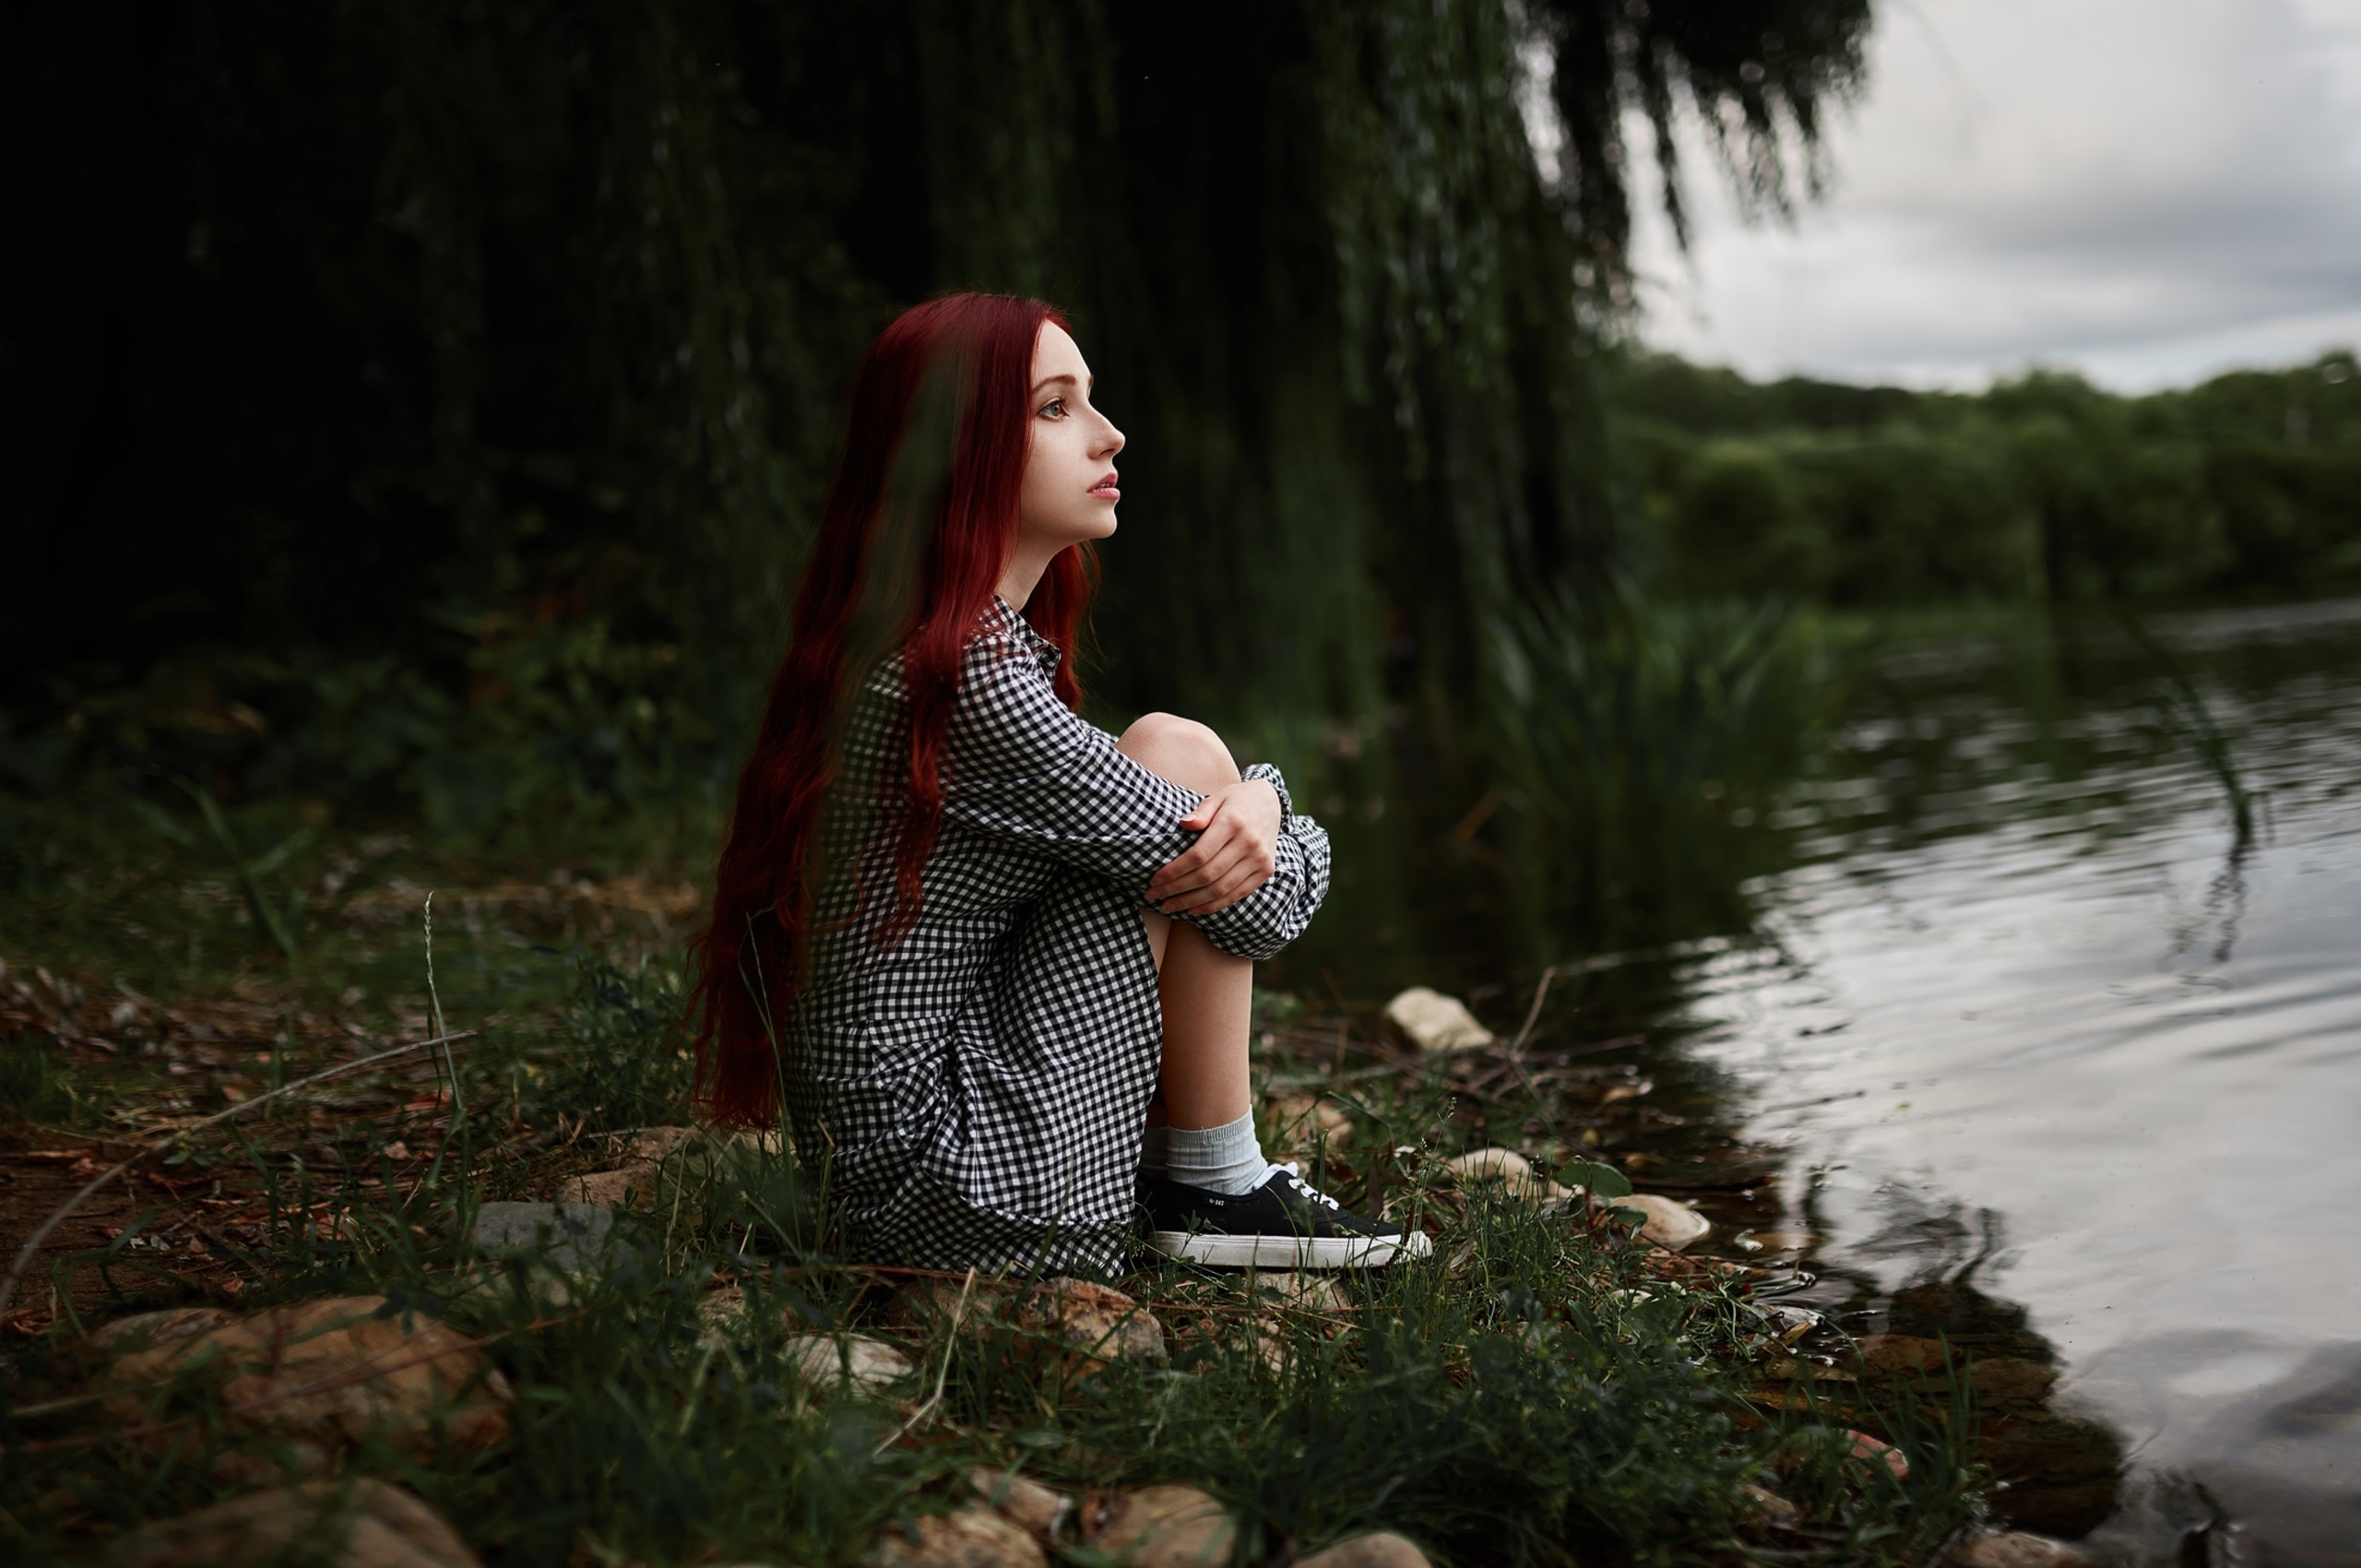 girl-sitting-at-lake-side-view-go.jpg